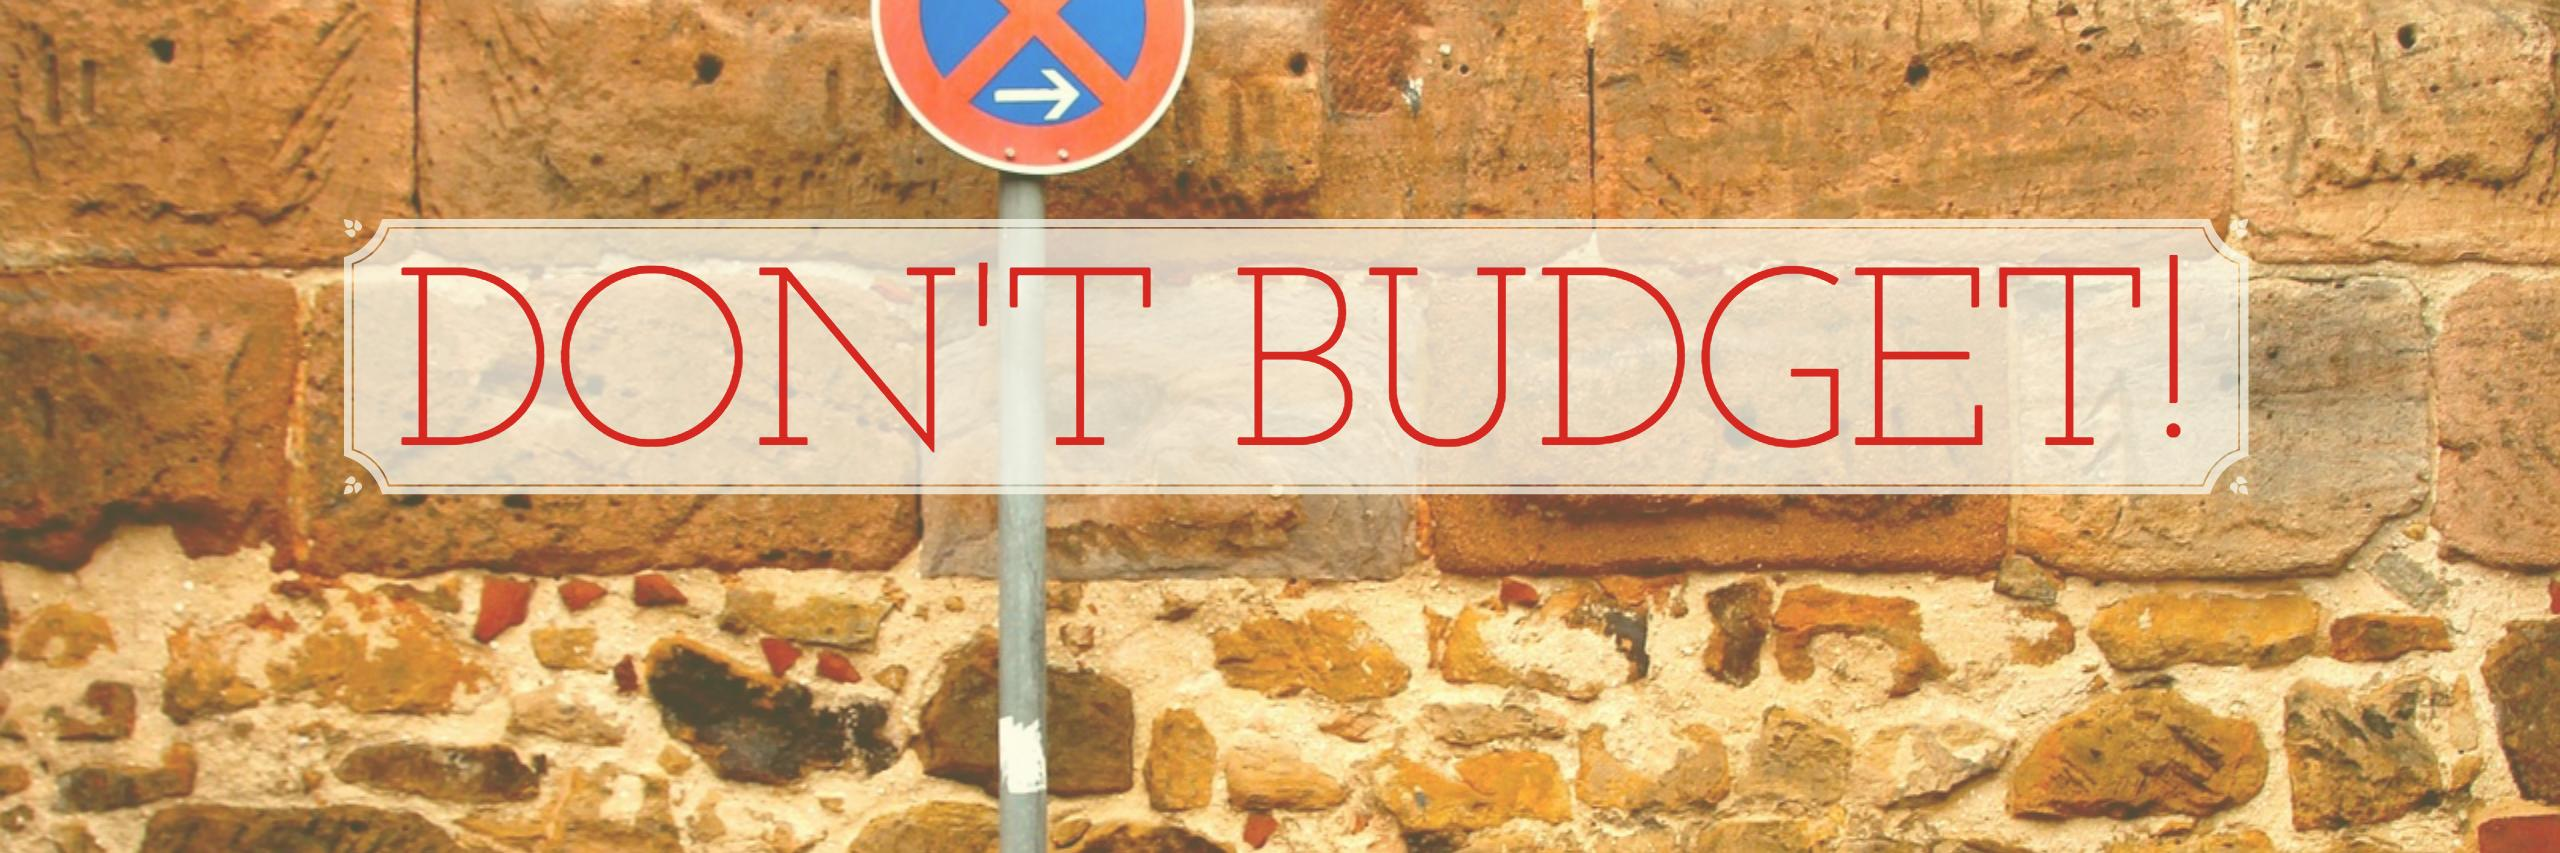 Don't listen to the thousands of budgeting templates you have seen searching on Google. The Fiscal Fitness PHX budget is the best, most efficient budget to help you take control of you money, reduce stress, stop living paycheck to paycheck and save like you mean it!